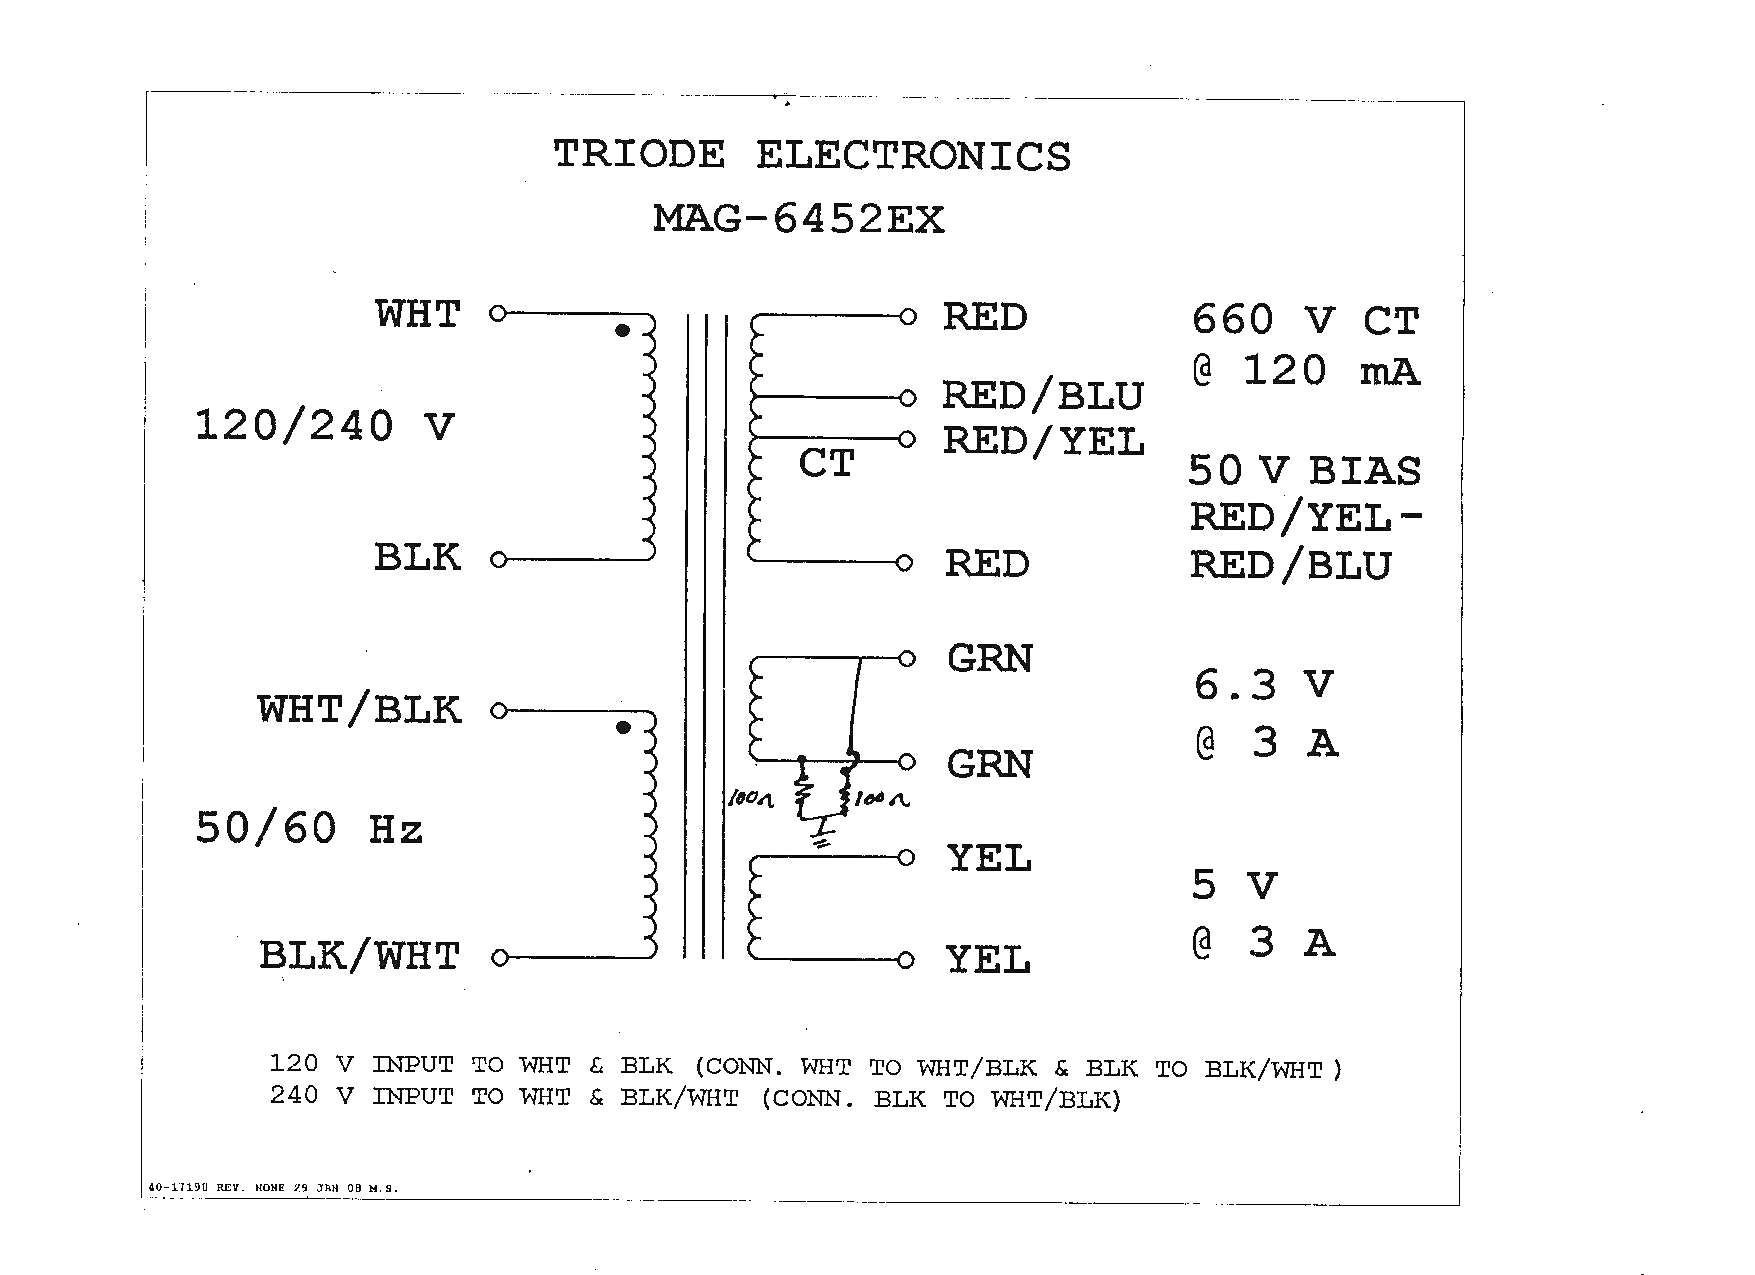 buck boost transformer wiring diagram Download-buck and boost transformer wiring diagram Collection Acme Transformers Wiring Diagrams 11 t 9-t